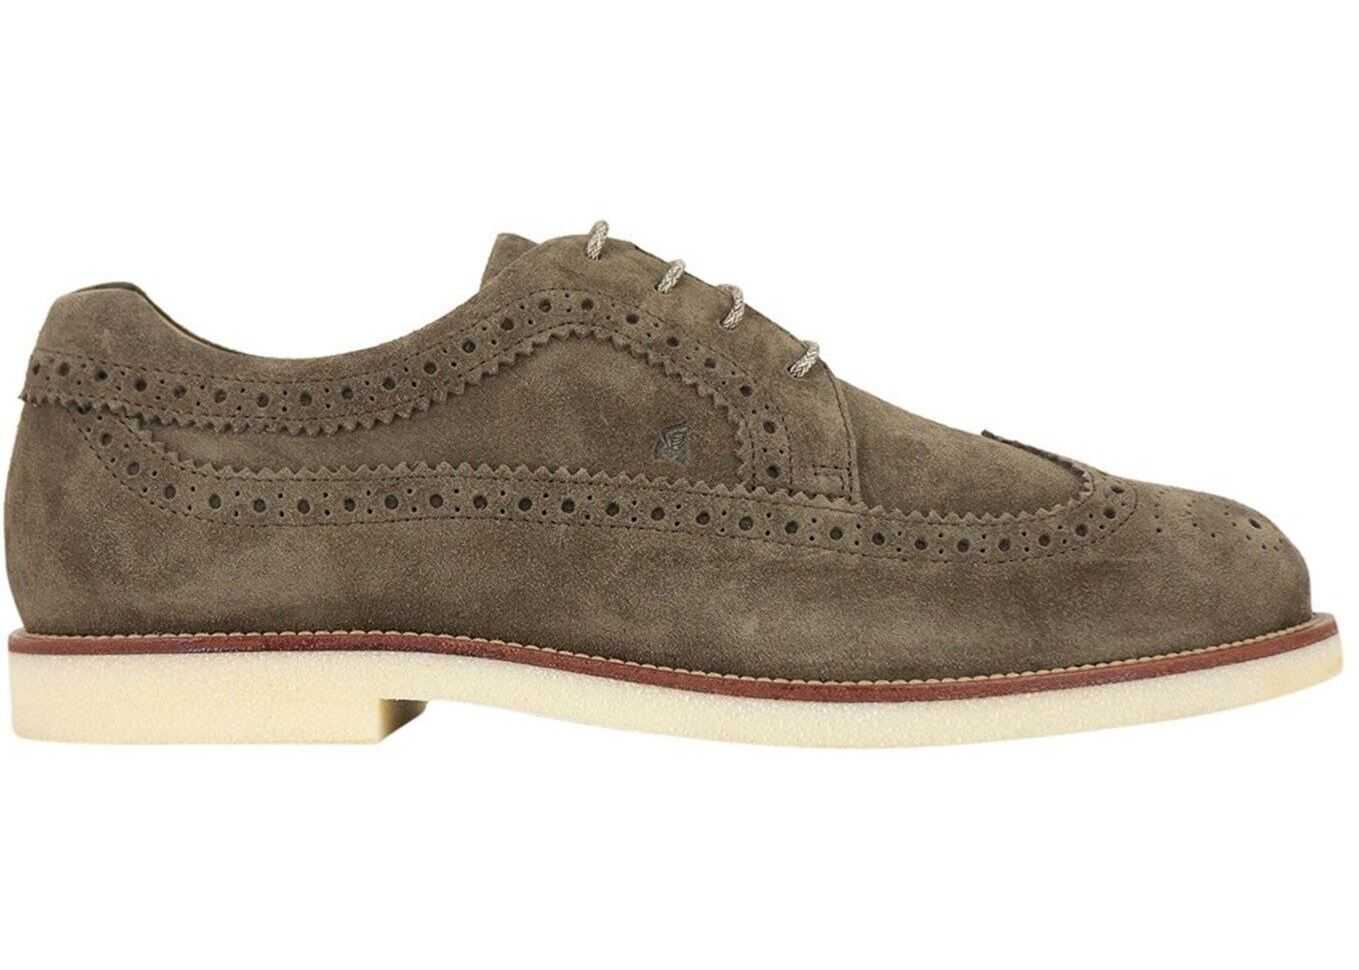 Hogan Suede Derby Shoes In Brown HXM4560BO00HG0S413 Brown imagine b-mall.ro